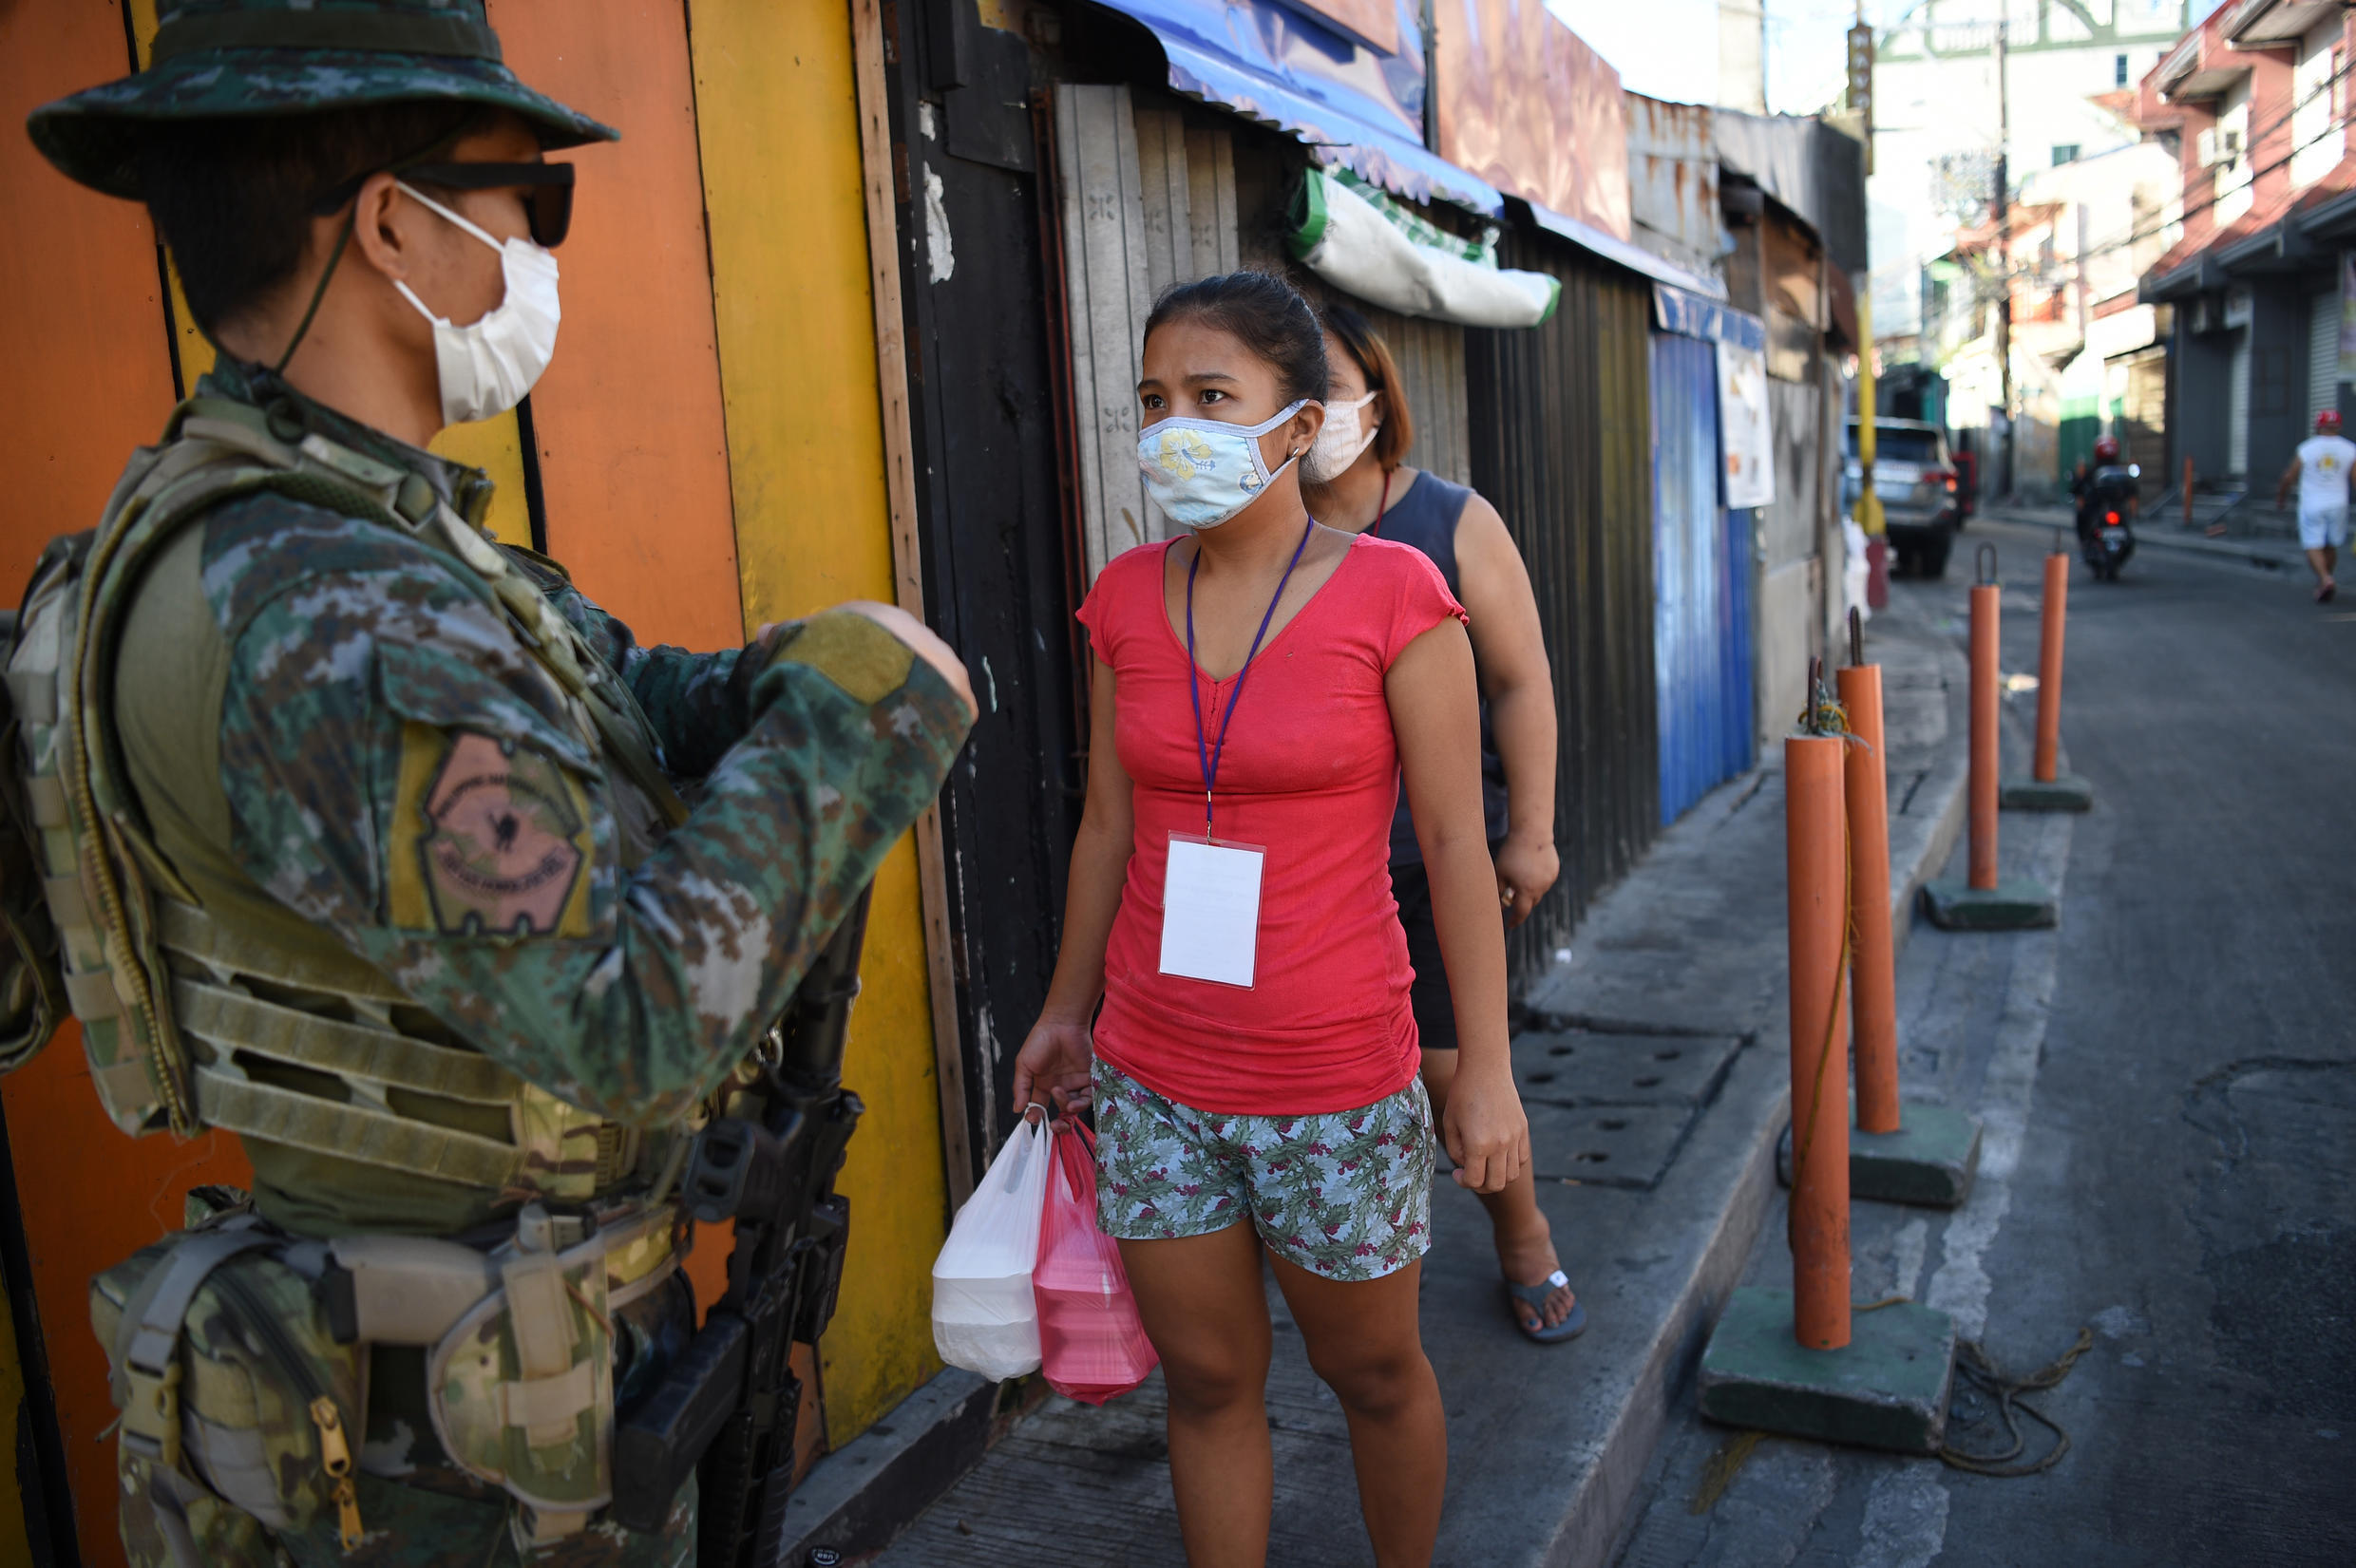 The Philippines imposed one of the harshest lockdowns in the world in mid-March, that kept people at home except to buy food and seek health treatment